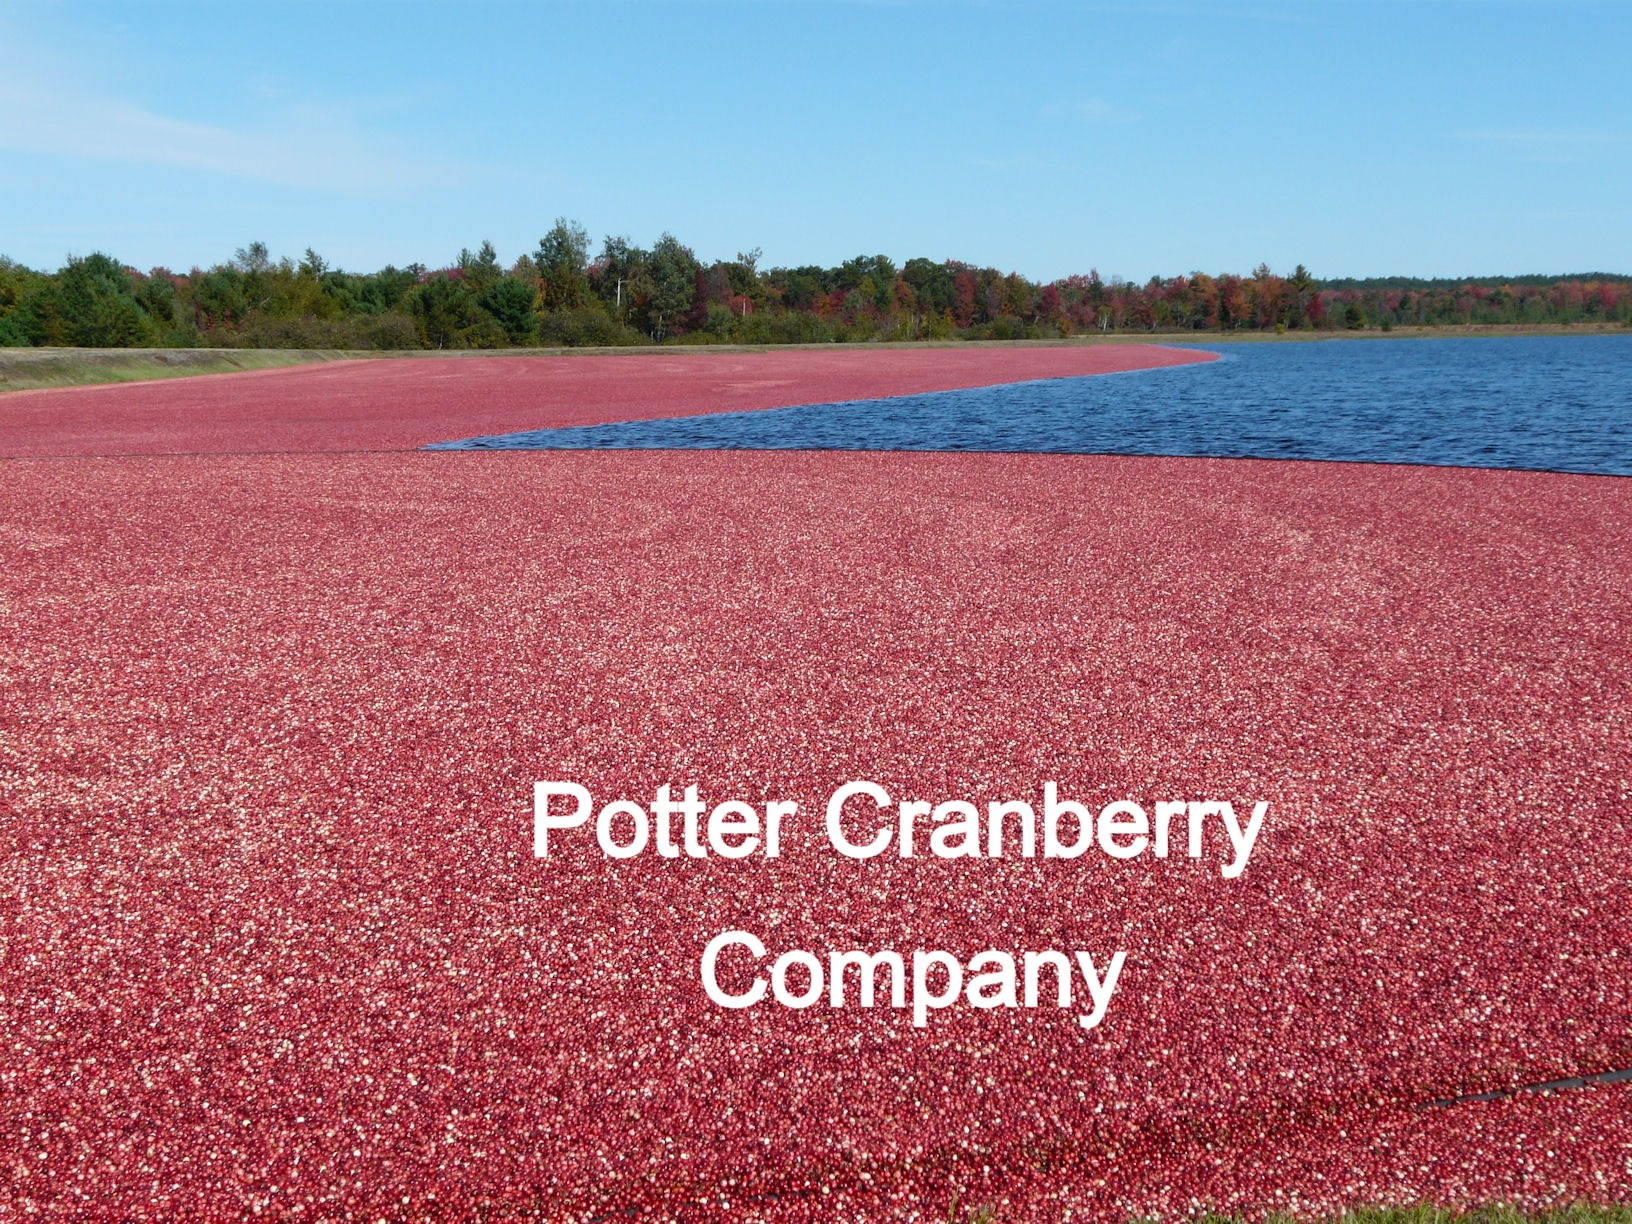 POTTER CRANBERRY COMPANY